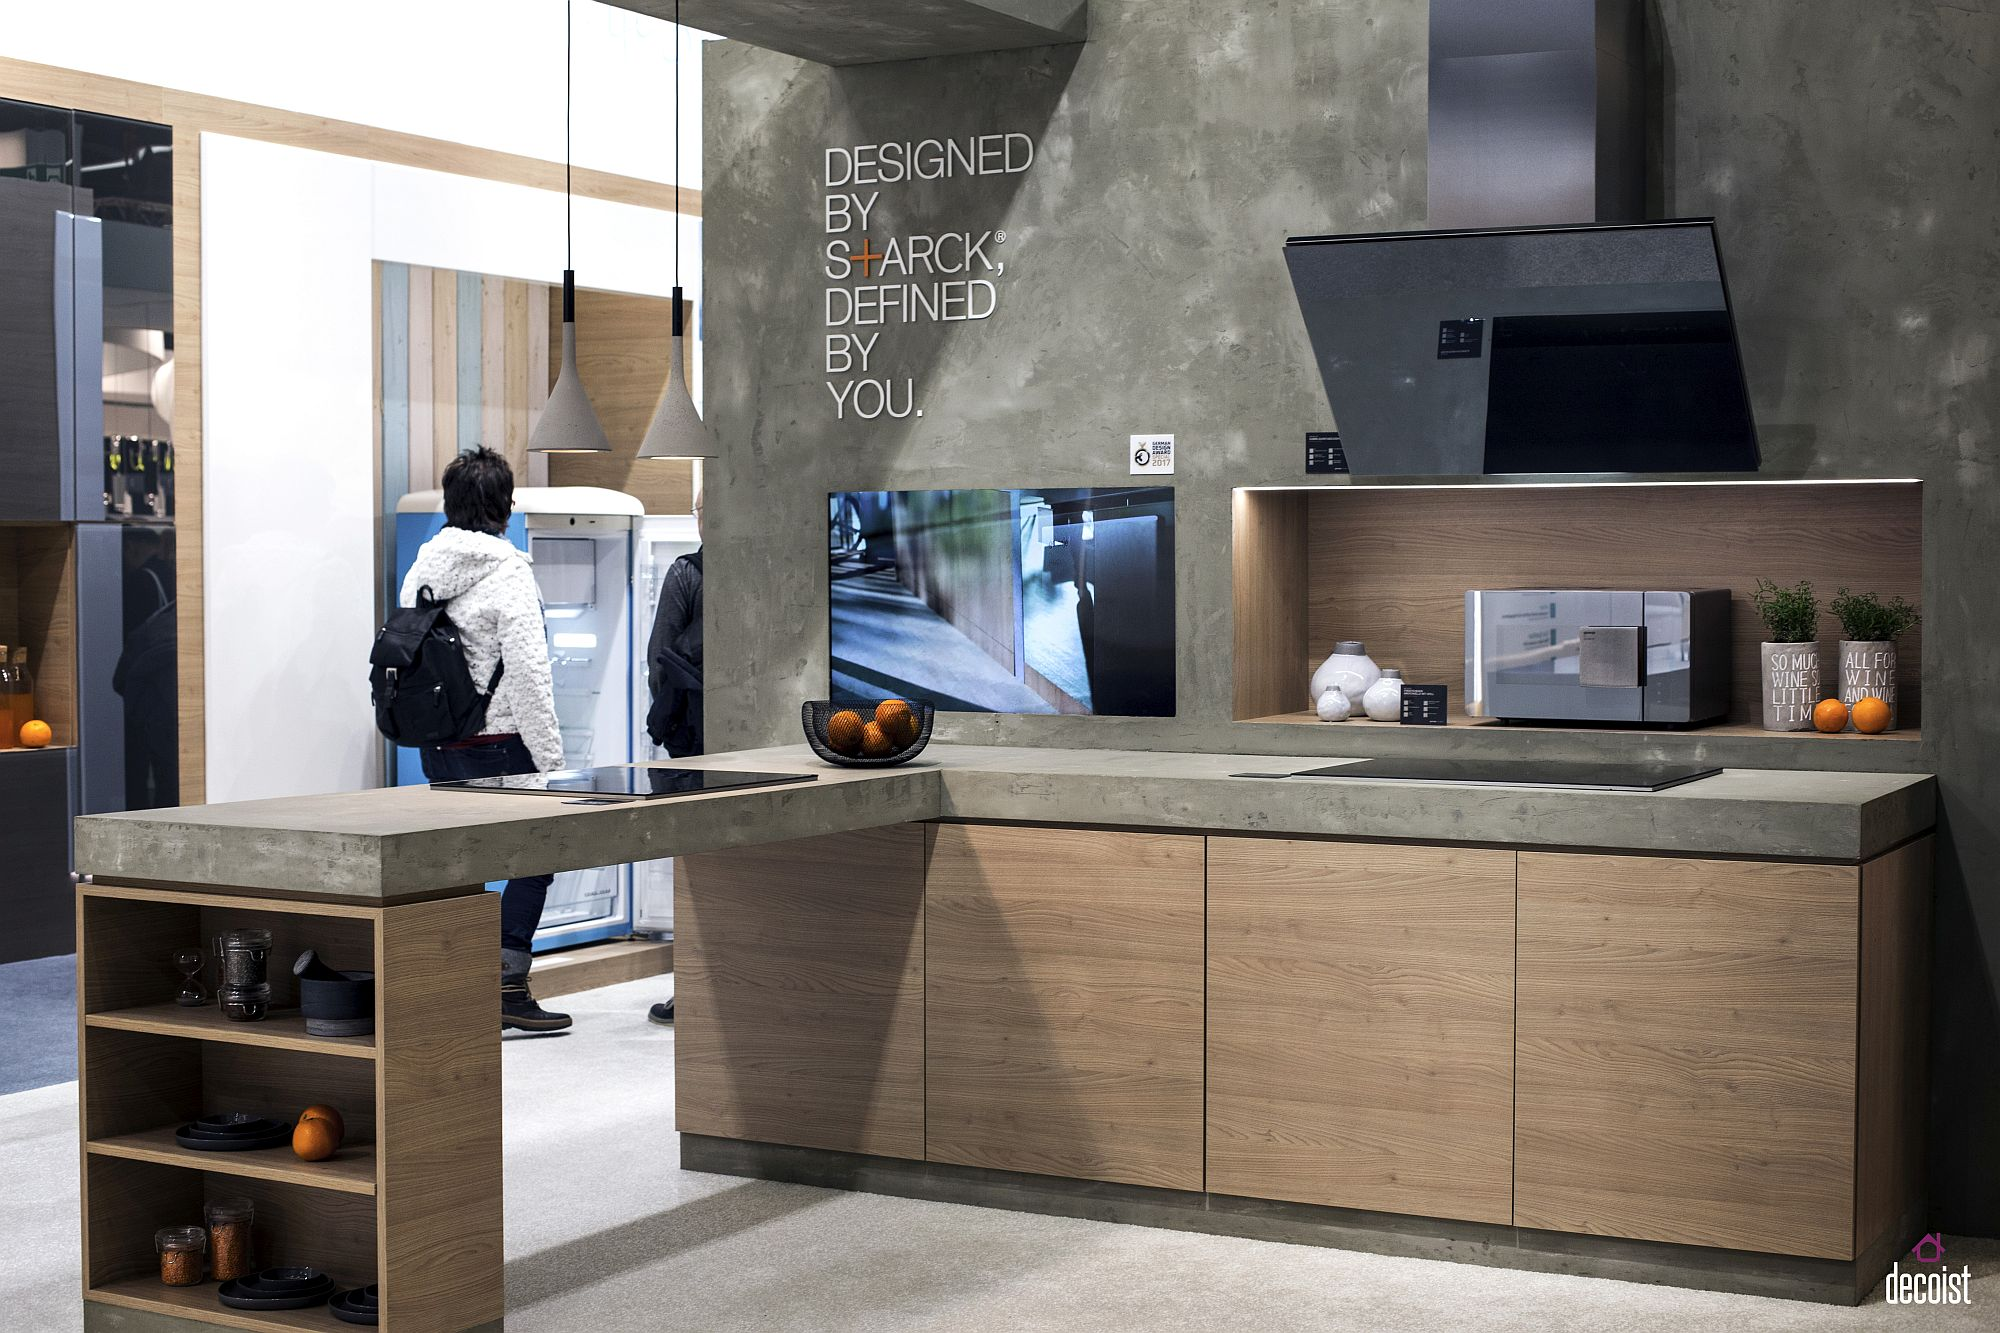 A slab of wood or concrete can add additional space to the one-wall kitchen